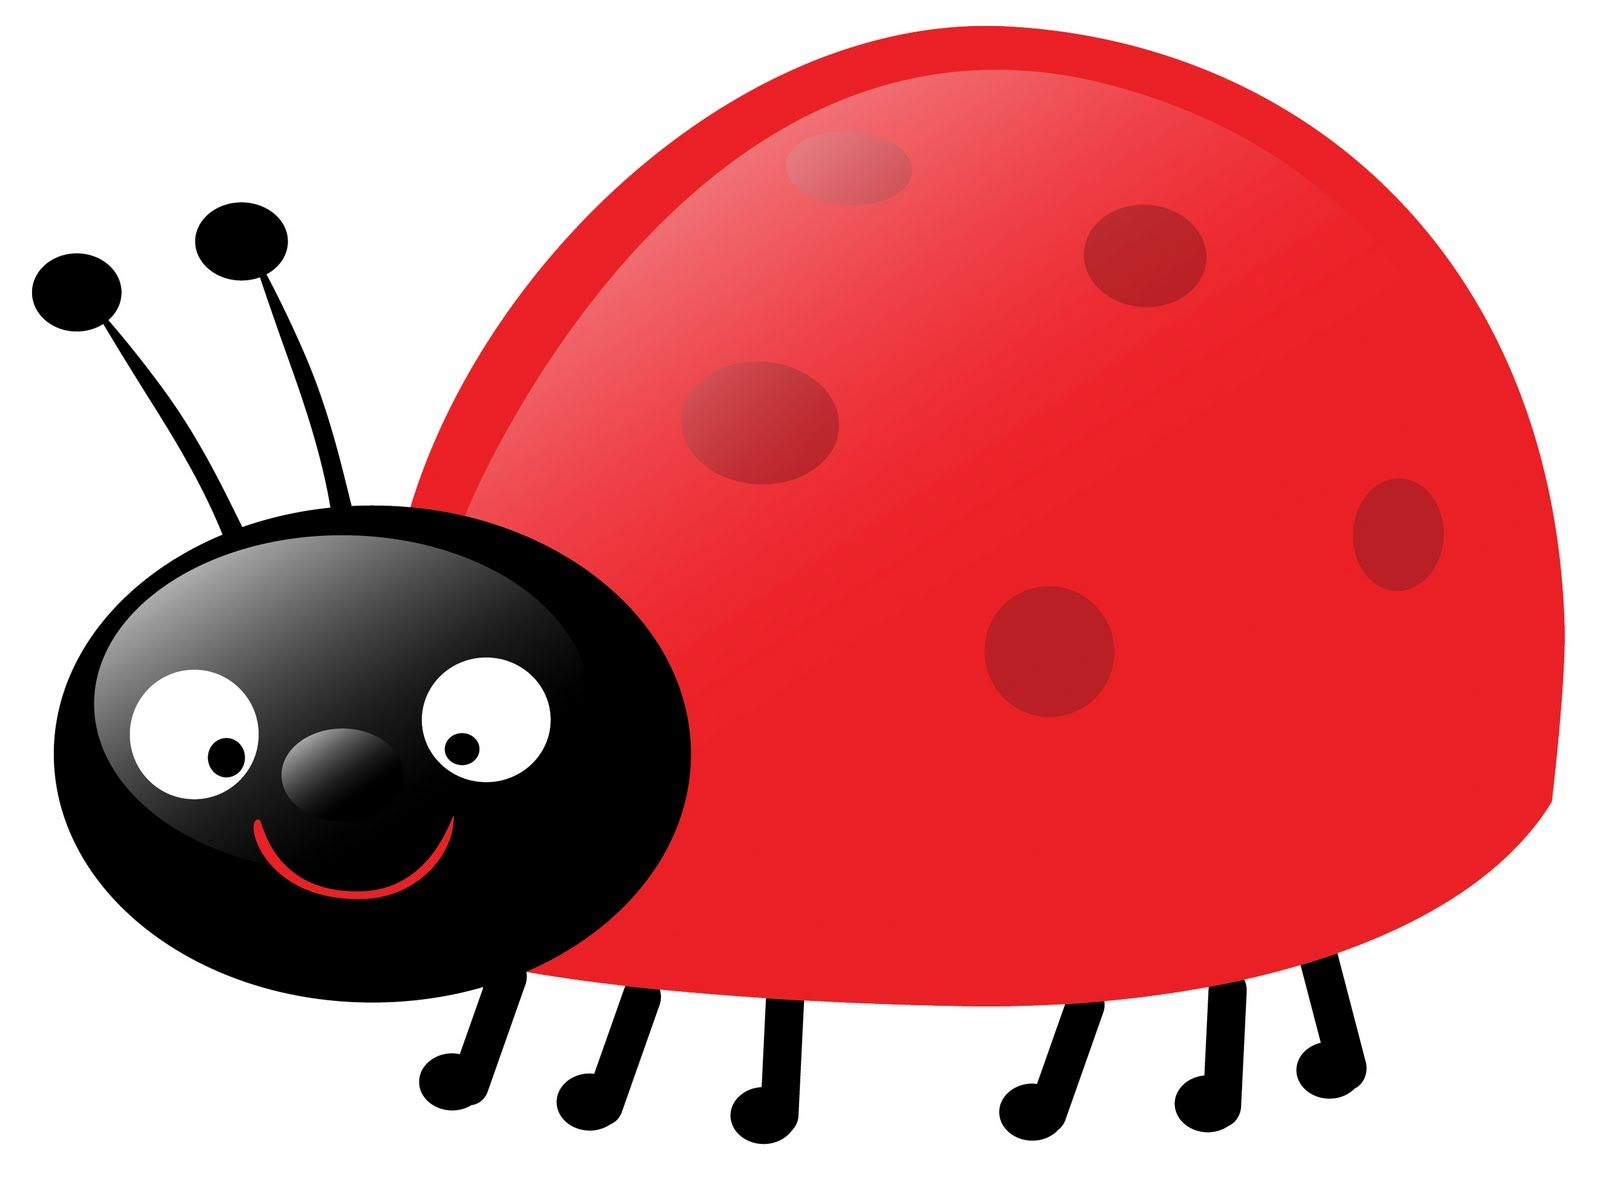 Ladybugs clipart side view. Red best ladybug clip